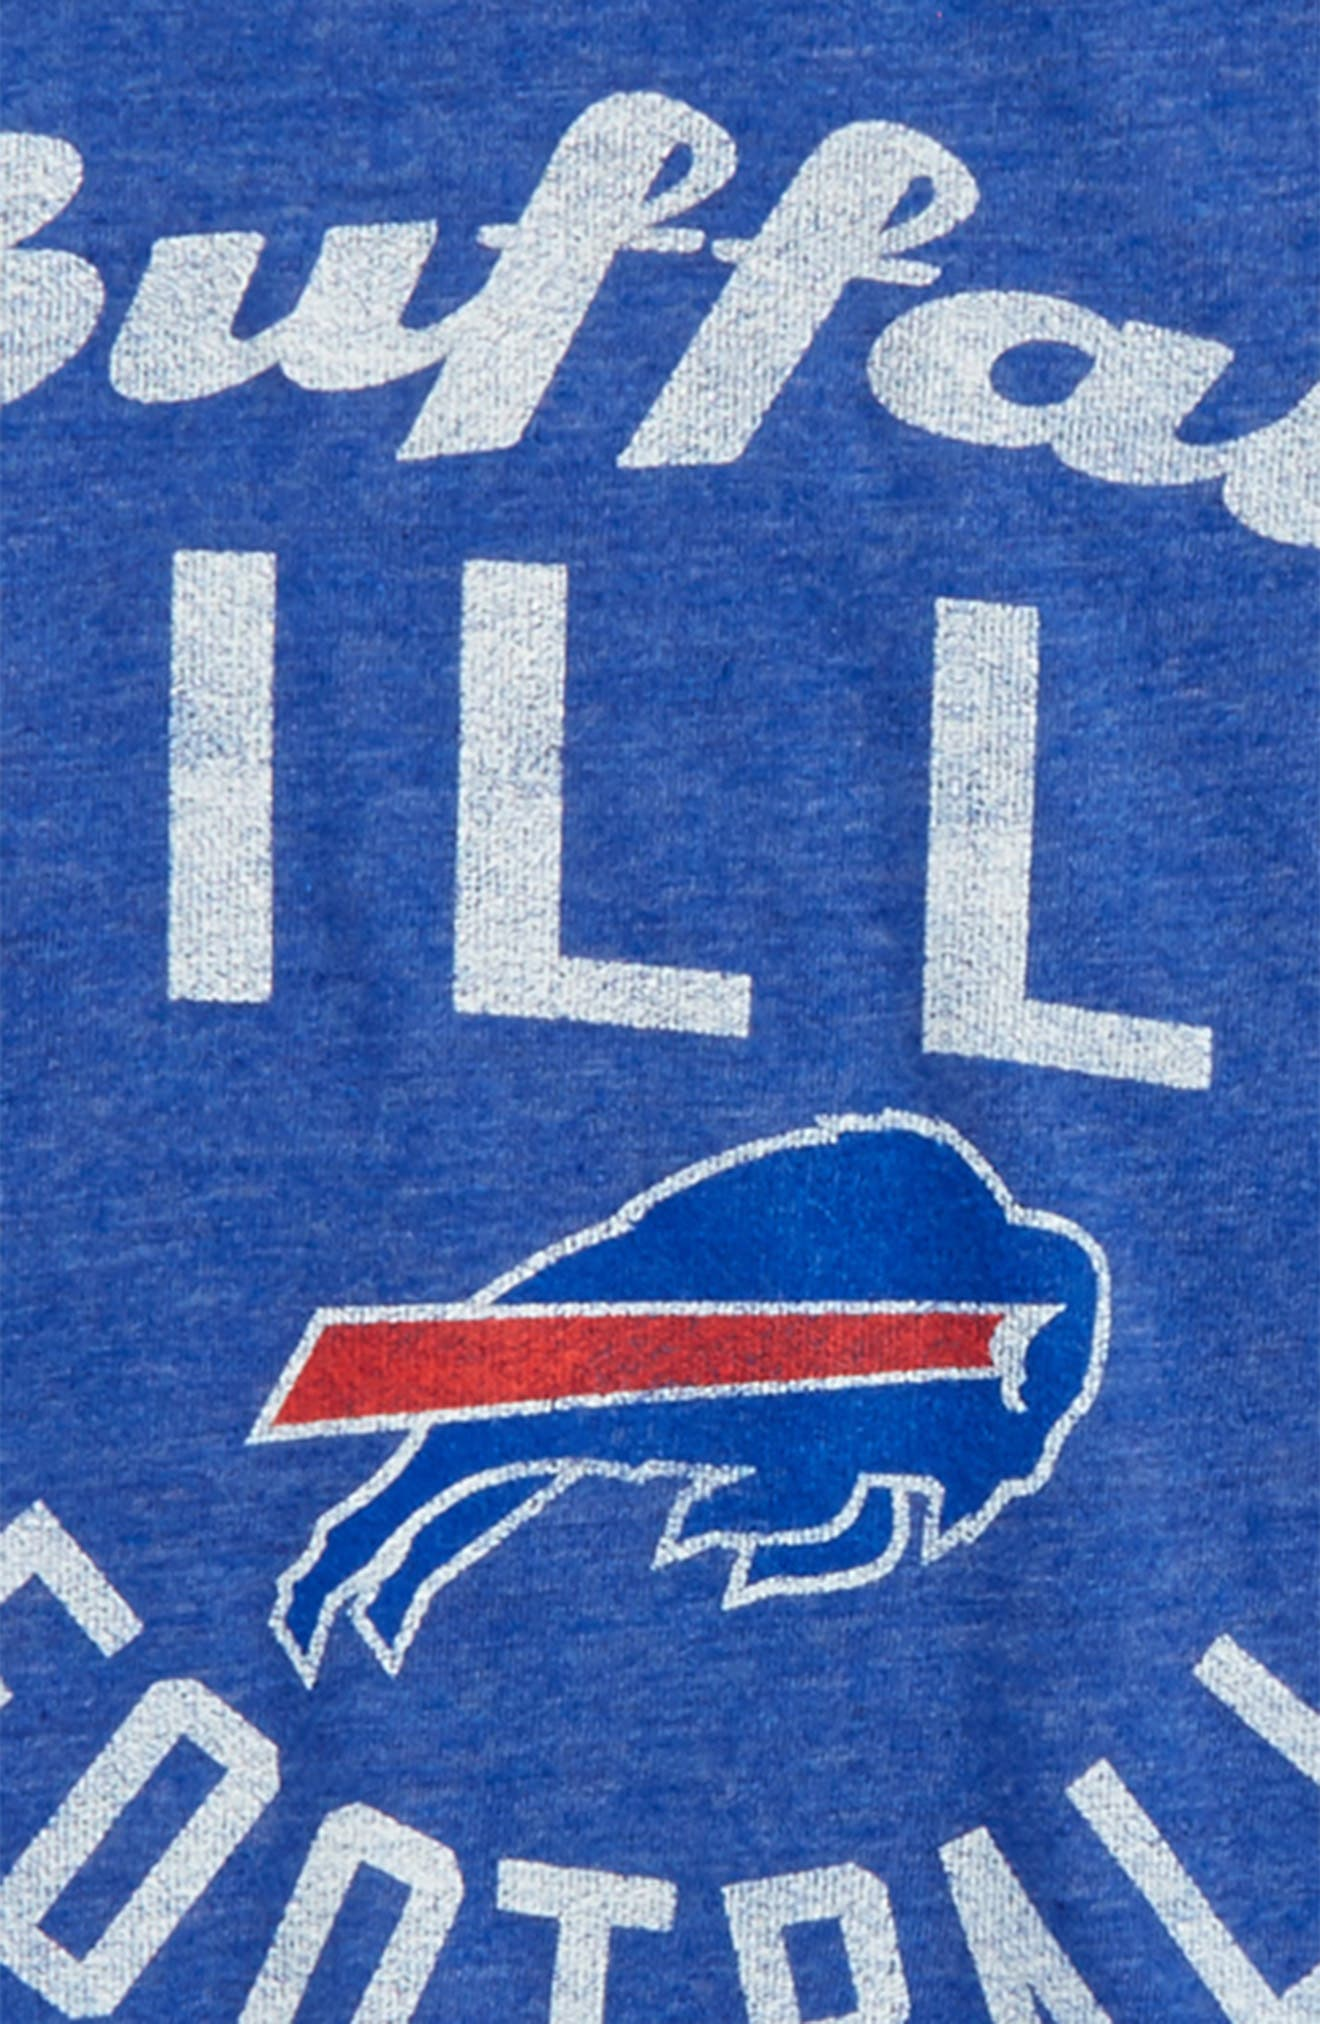 NFL Buffalo Bills Distressed Logo T-Shirt,                             Alternate thumbnail 2, color,                             Royal